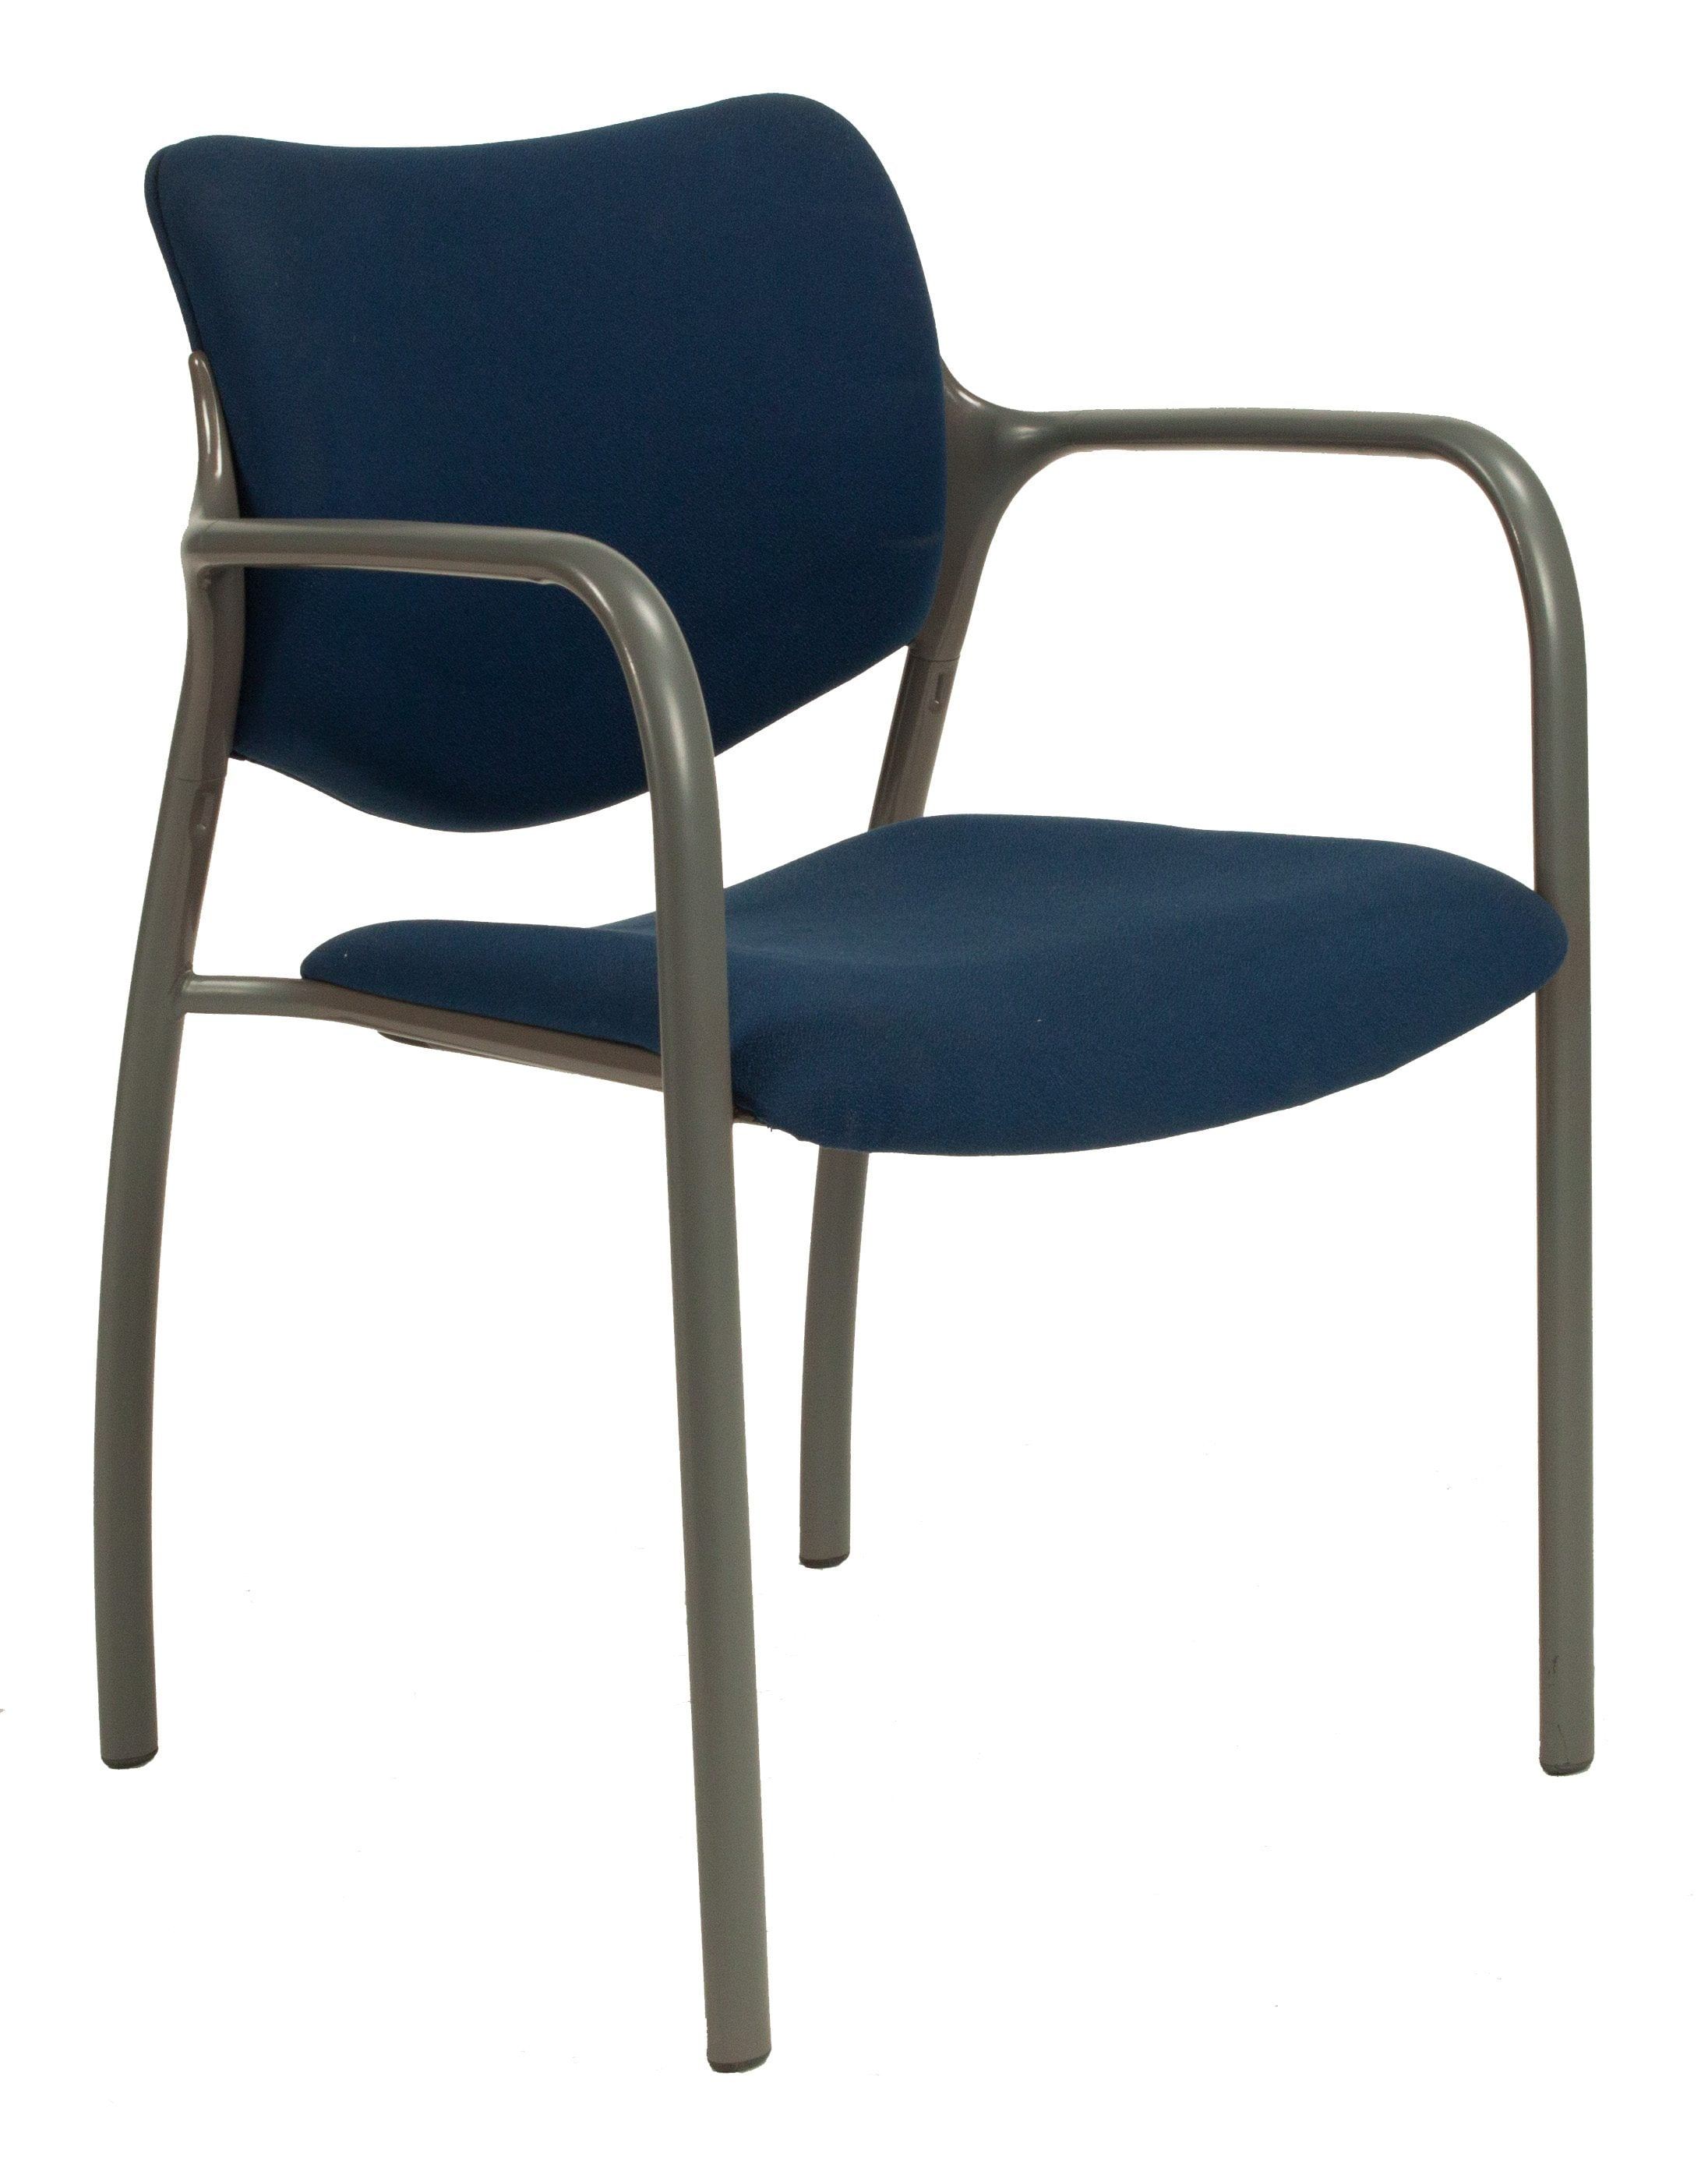 herman miller stacking chairs table and garden set used aside chair blue national office